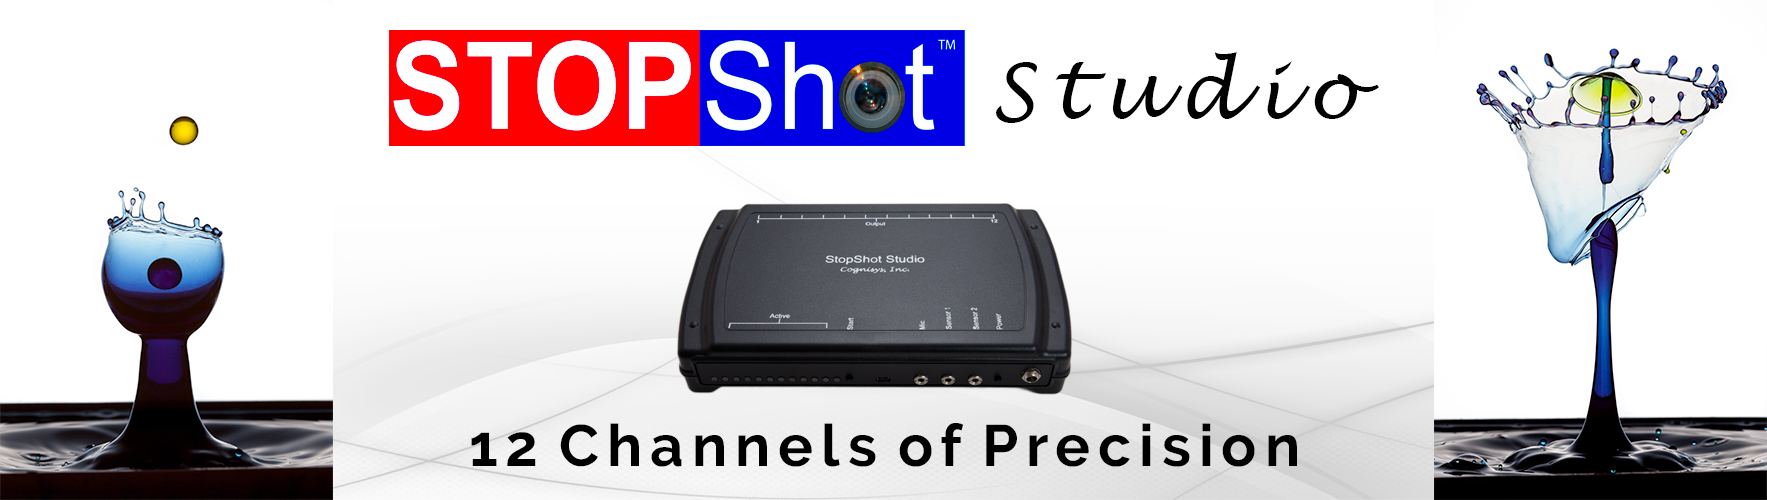 StopShot Studio 12 Channels of Precision